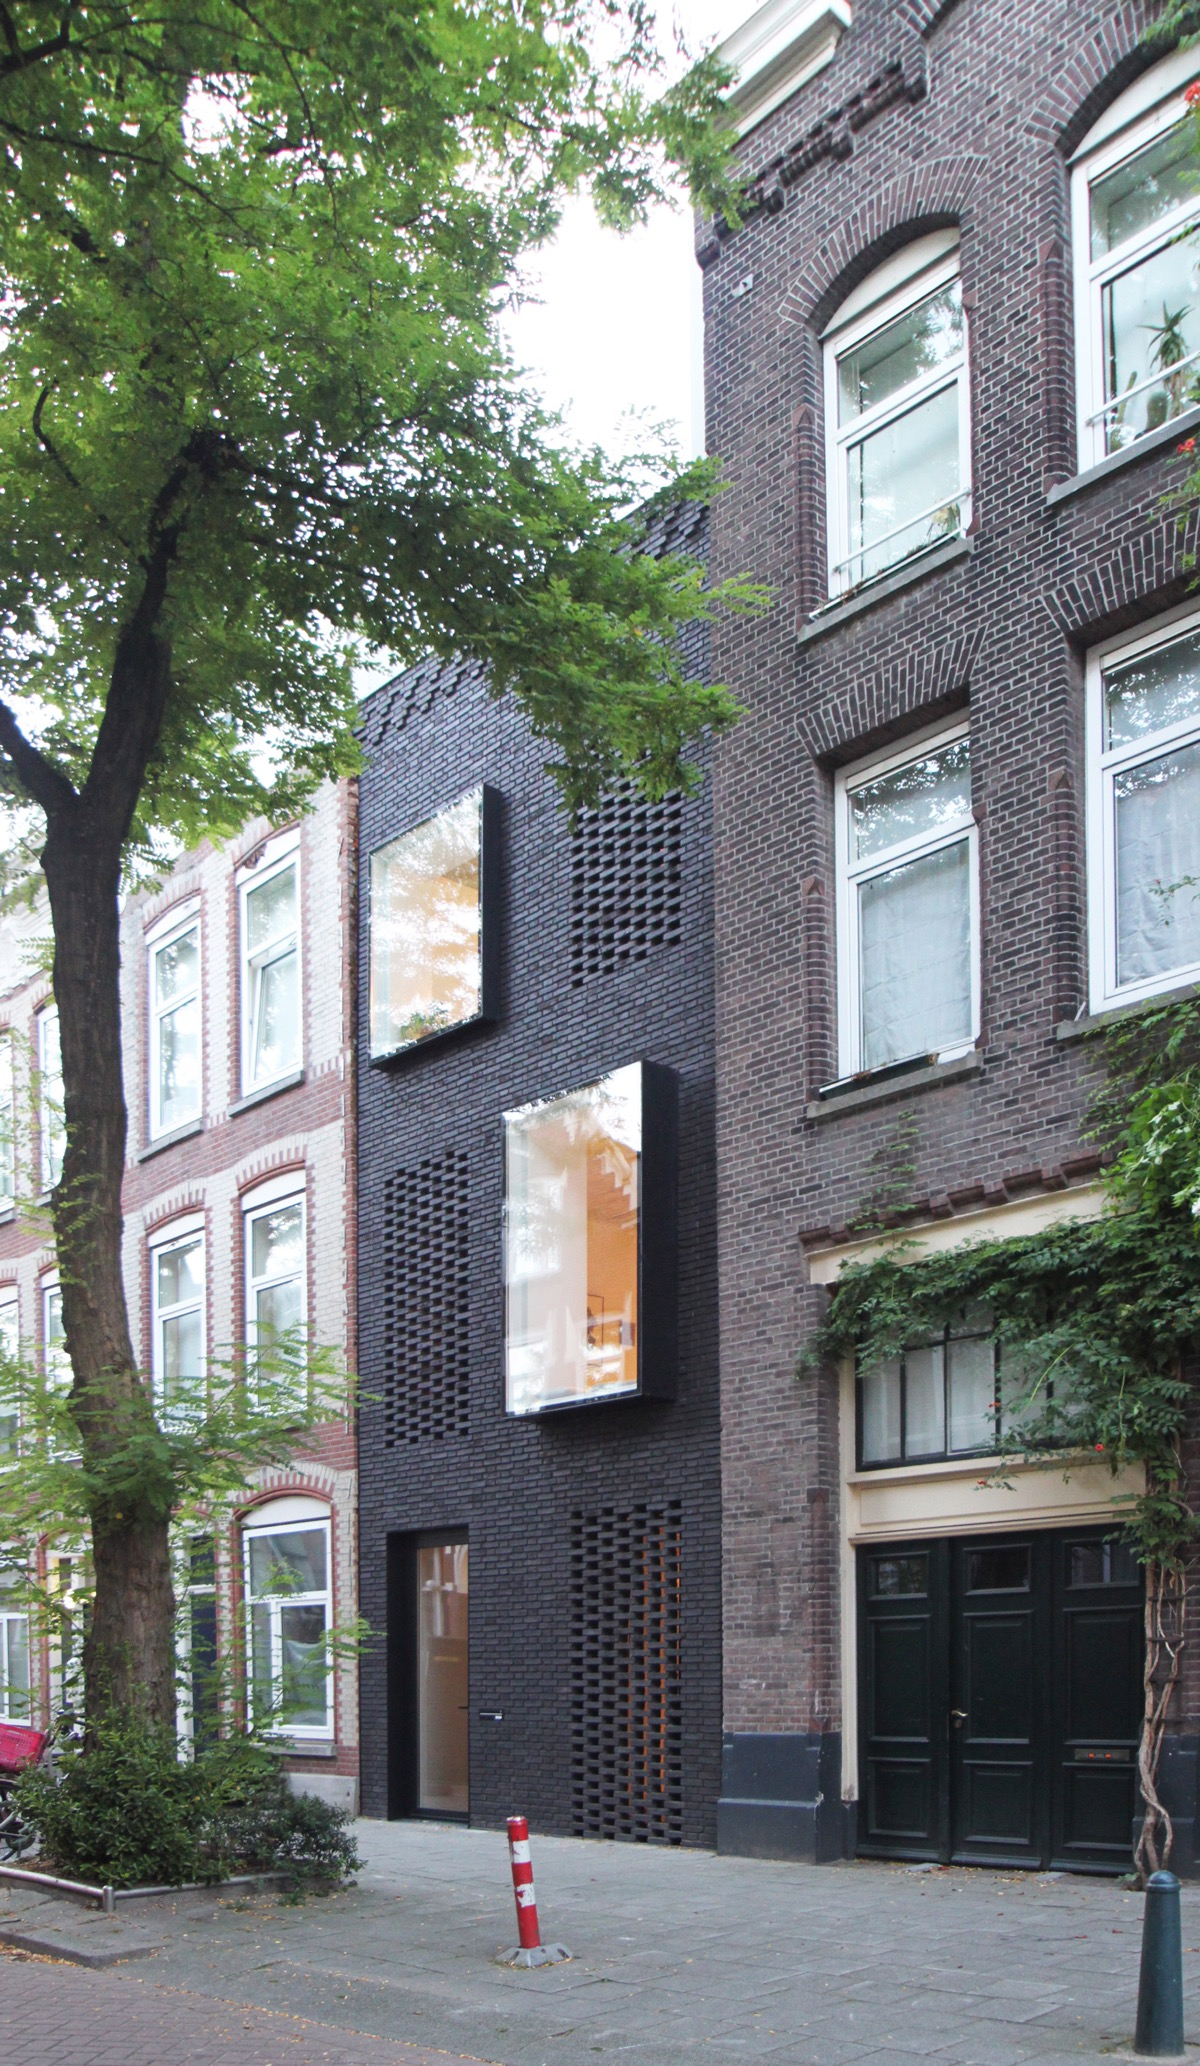 50 Narrow Lot Houses That Transform A Skinny Exterior Into Something Special images 47